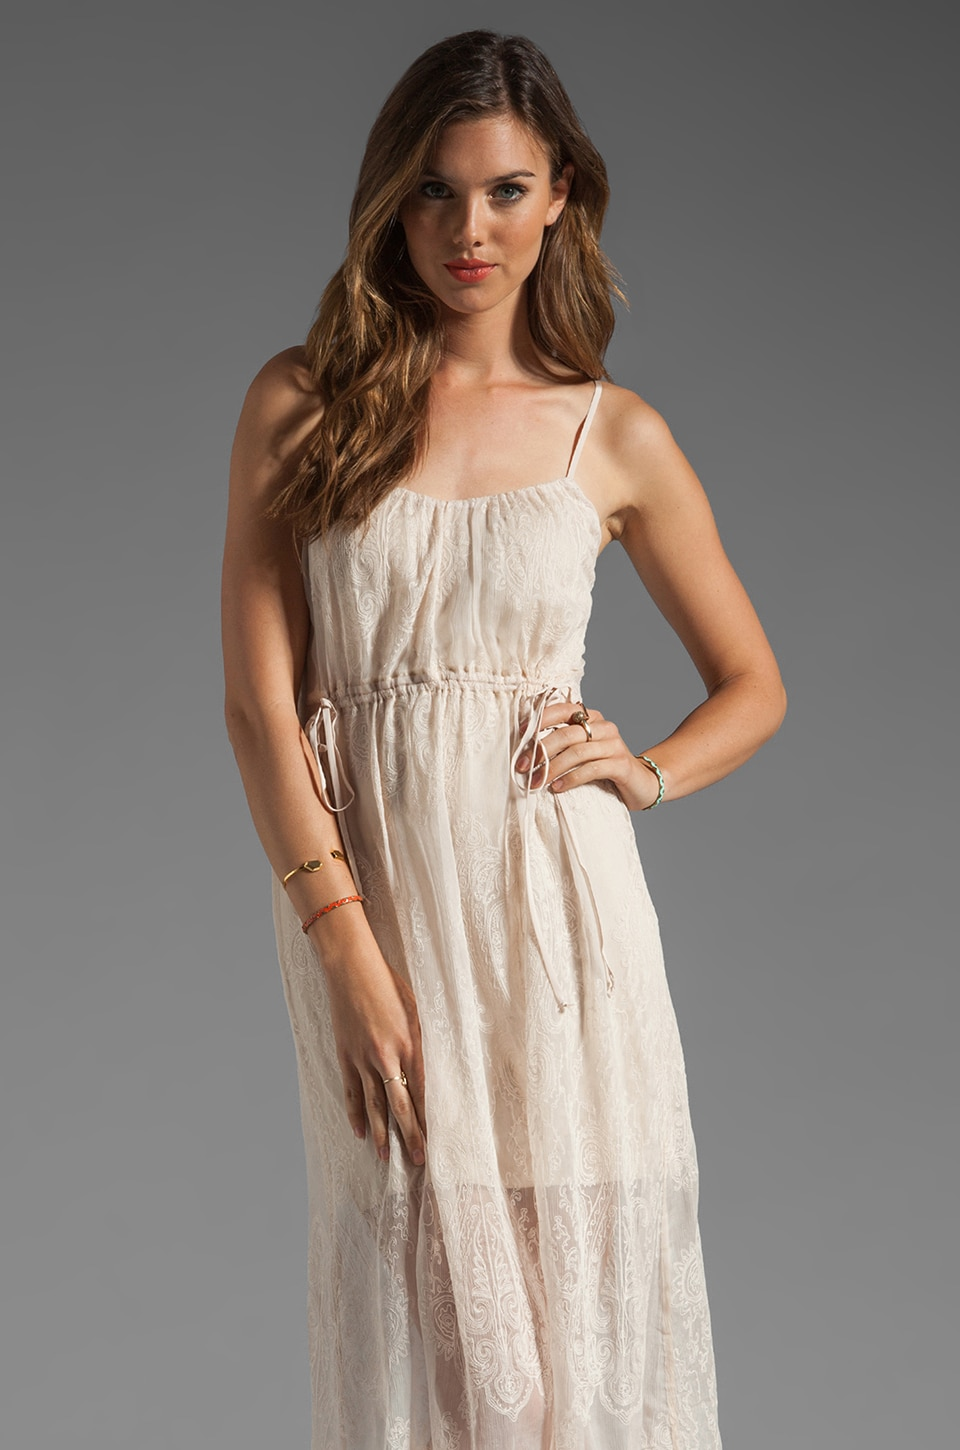 Twelfth Street By Cynthia Vincent High-Low Tank Dress in Cream